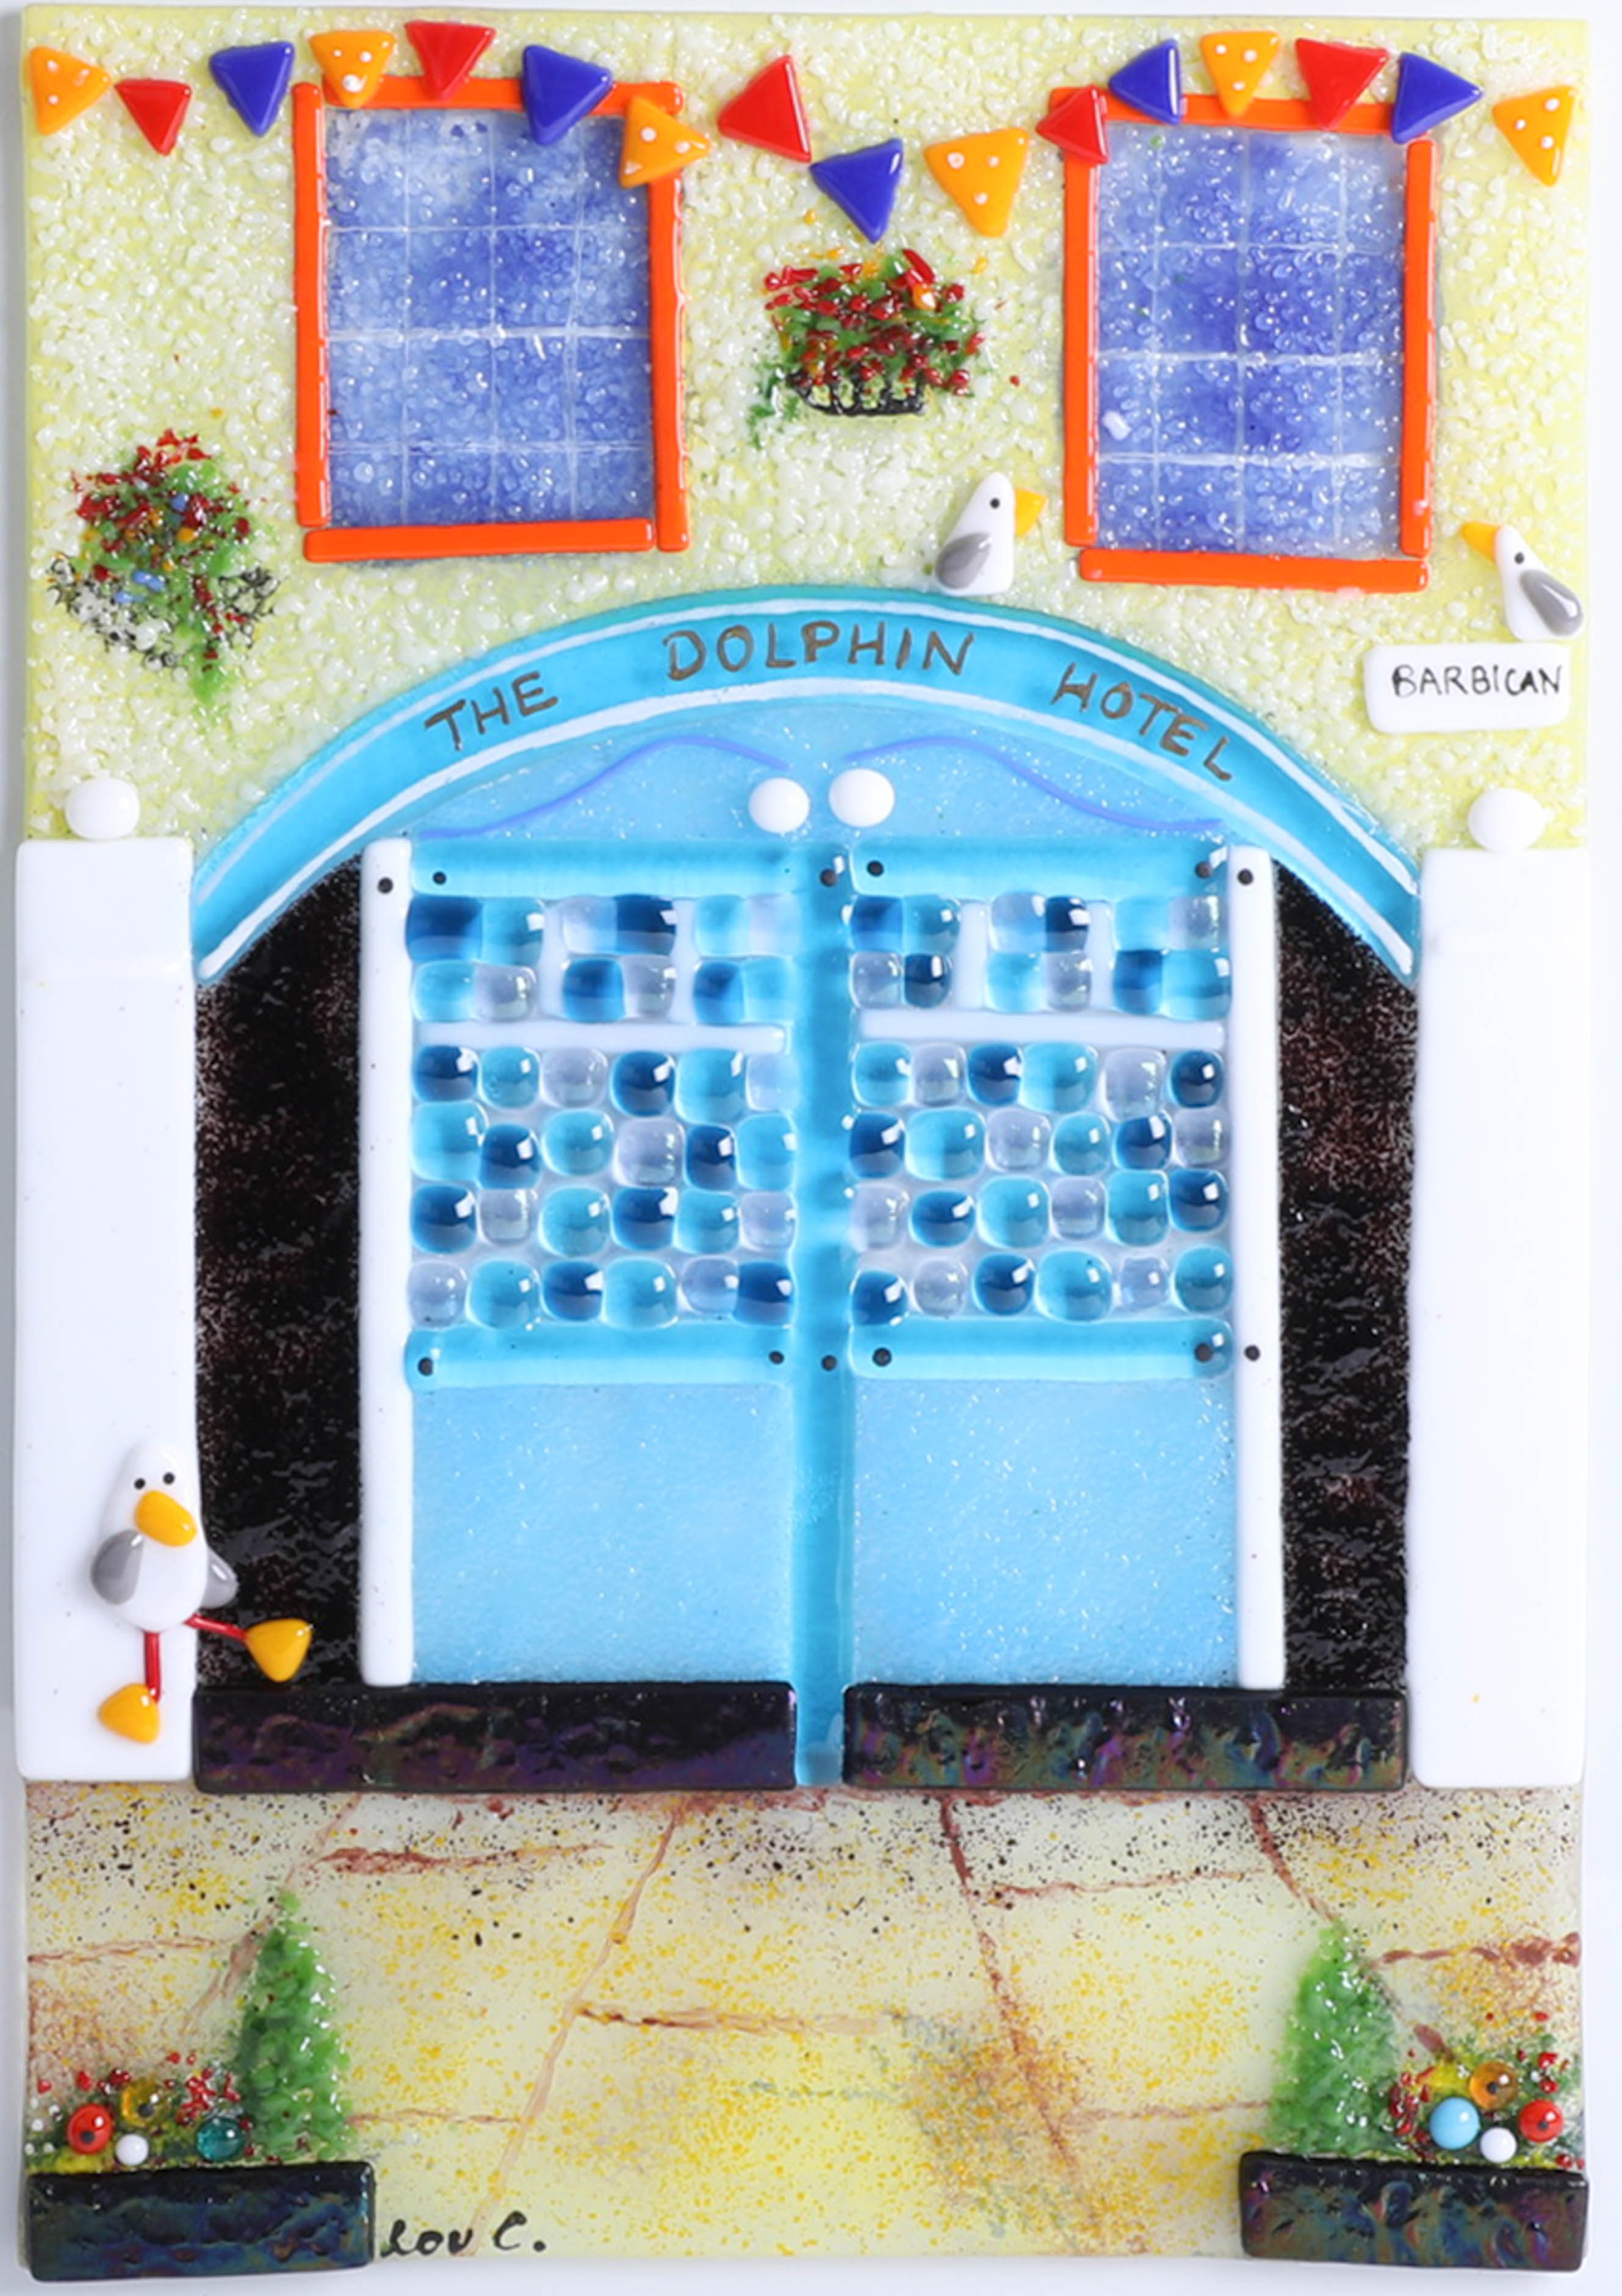 Lot 003 - Lou from Lou C fused glass, original glass work, titled 'The Dolphin Pub, signed, 30cm x 21cm.